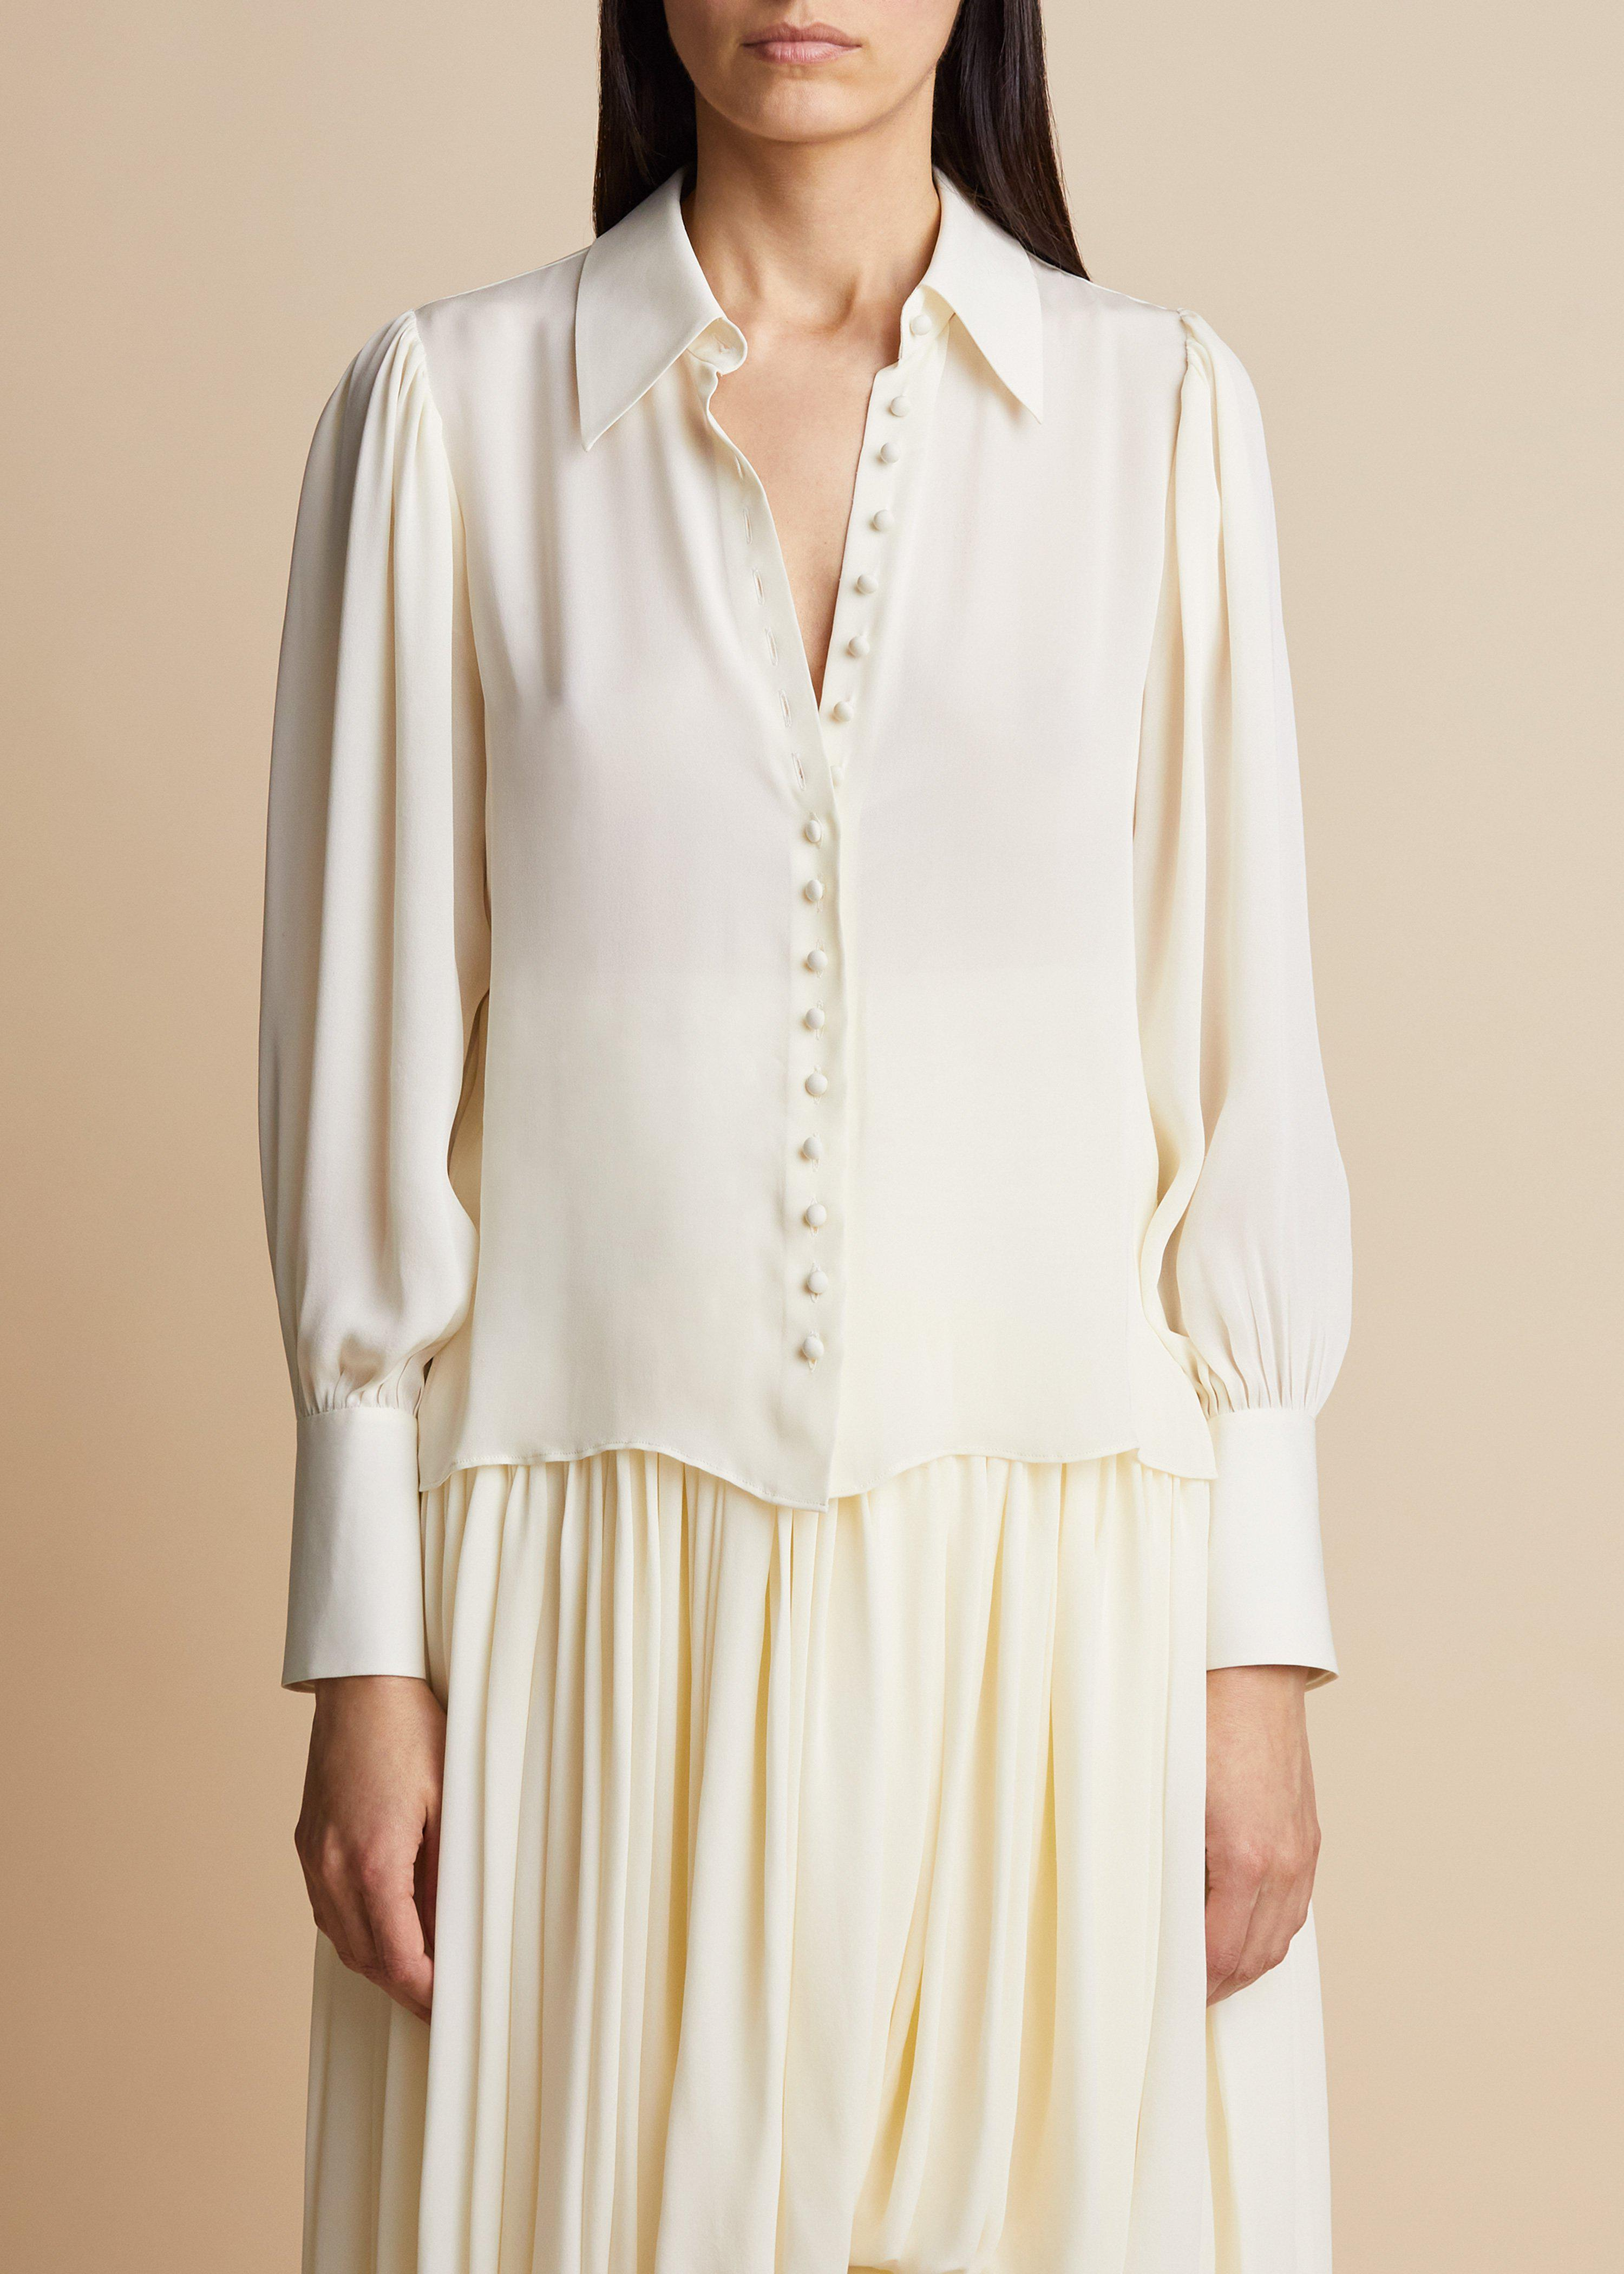 The Cristiana Top in Ivory